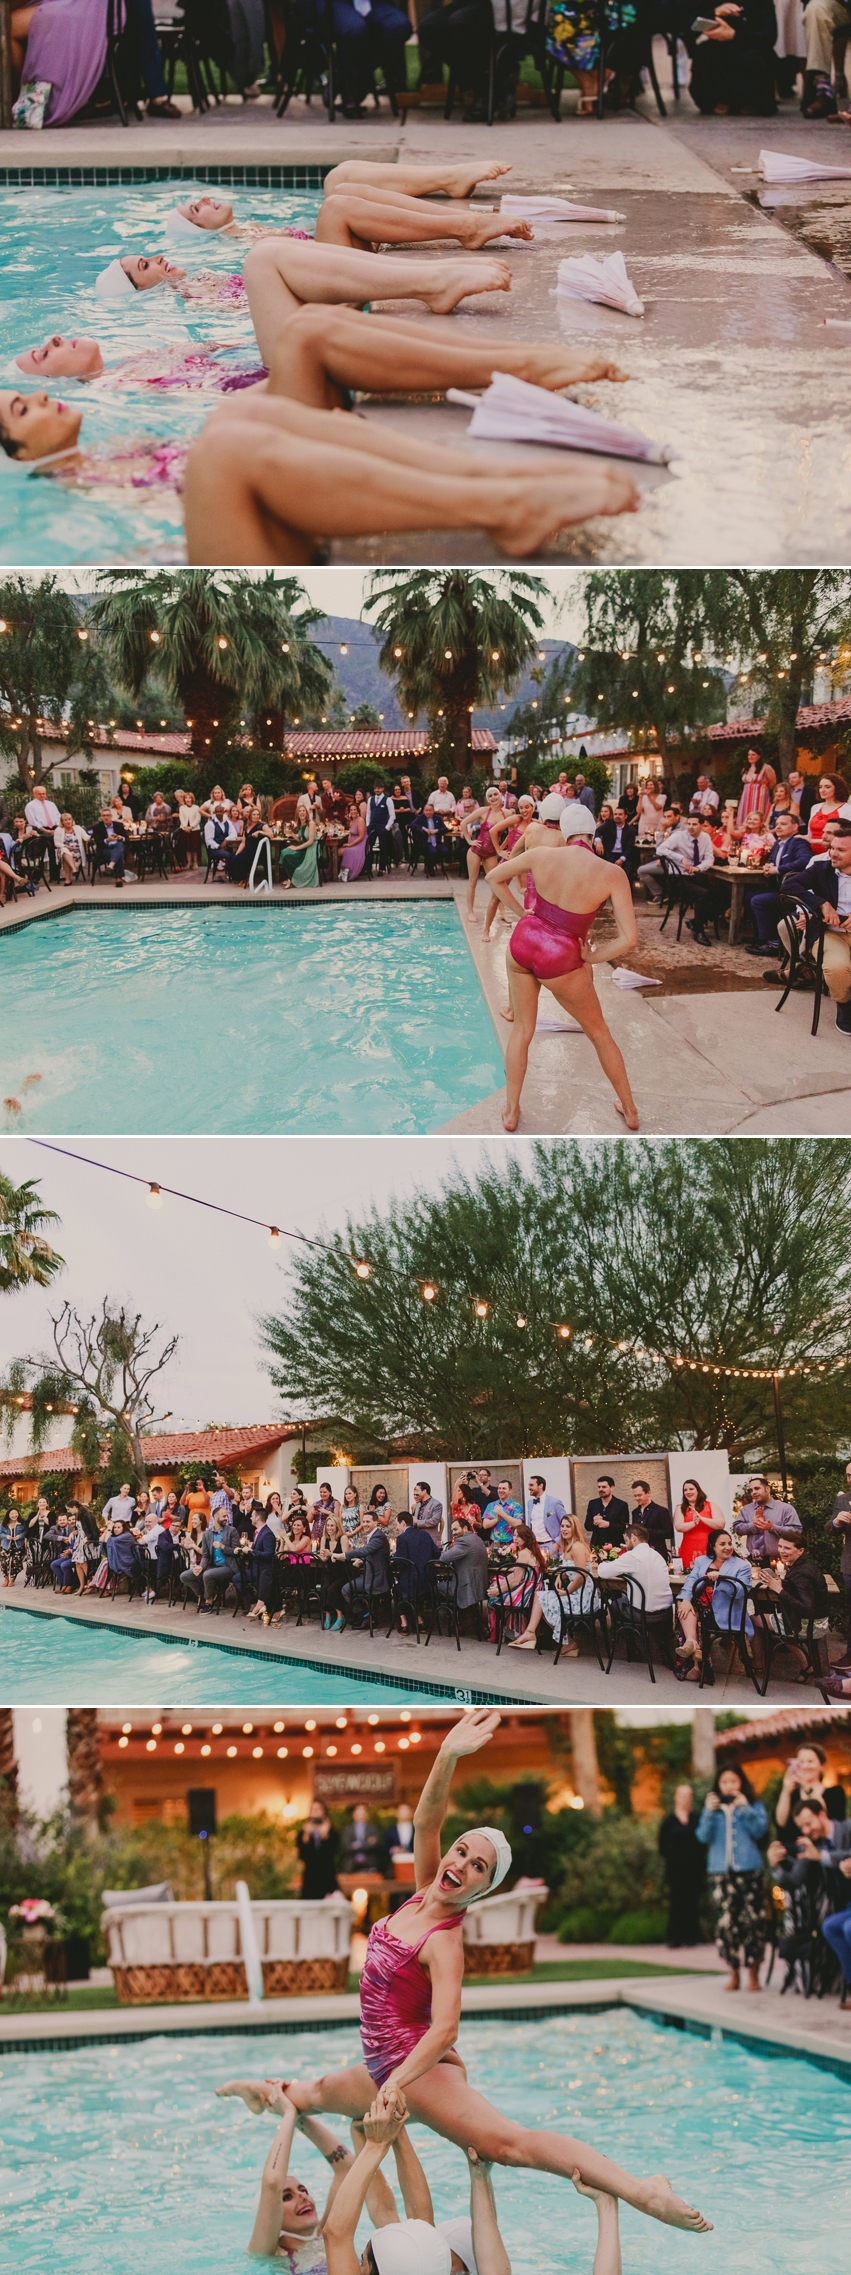 synchronized swimmers at wedding